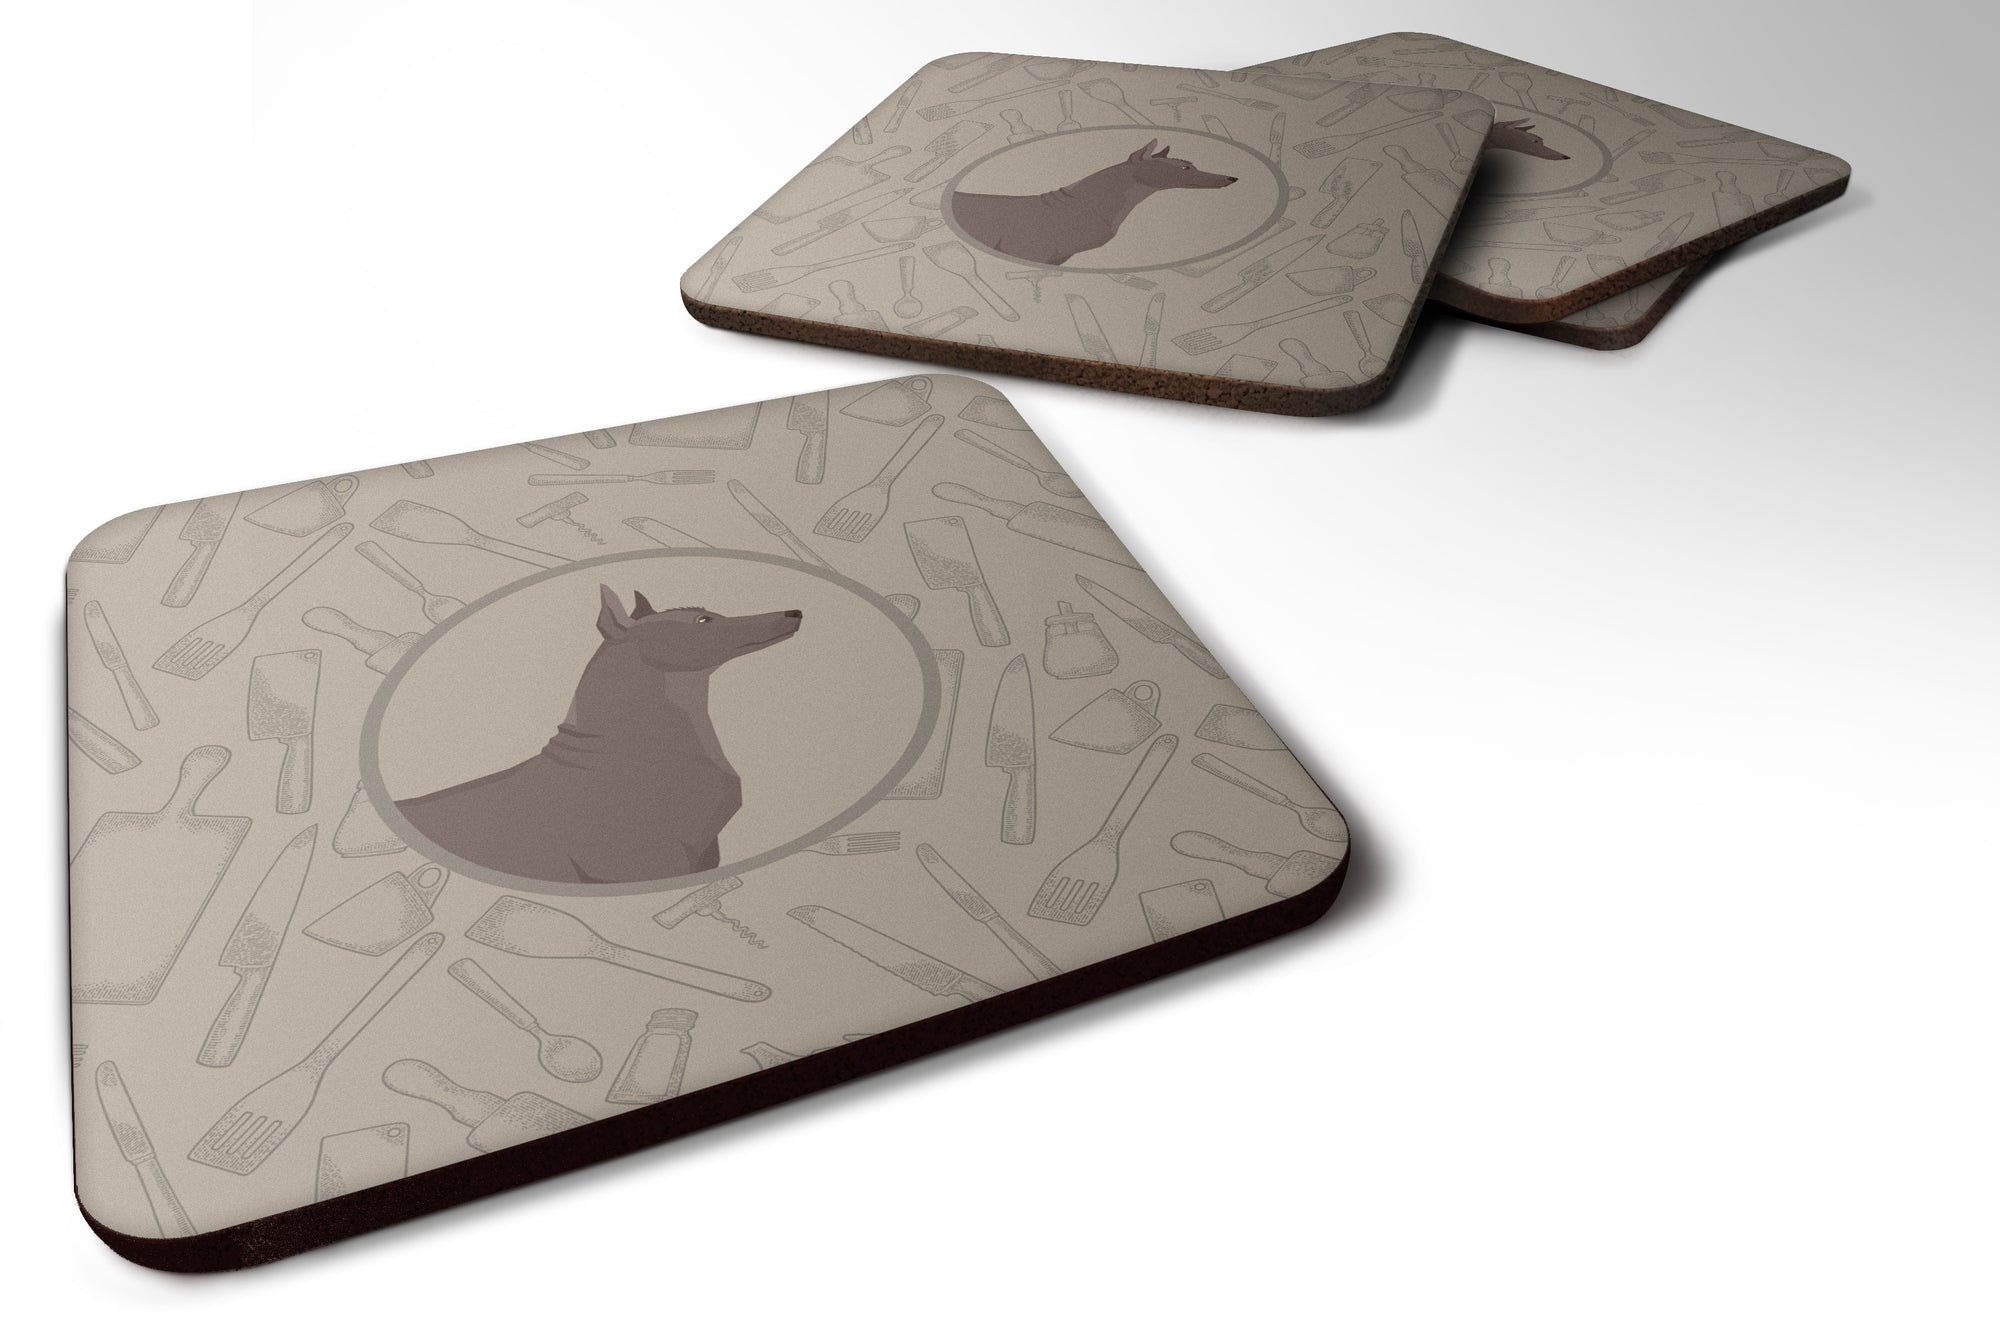 Mexican Hairless Dog Xolo In the Kitchen Foam Coaster Set of 4 CK2217FC by Caroline's Treasures